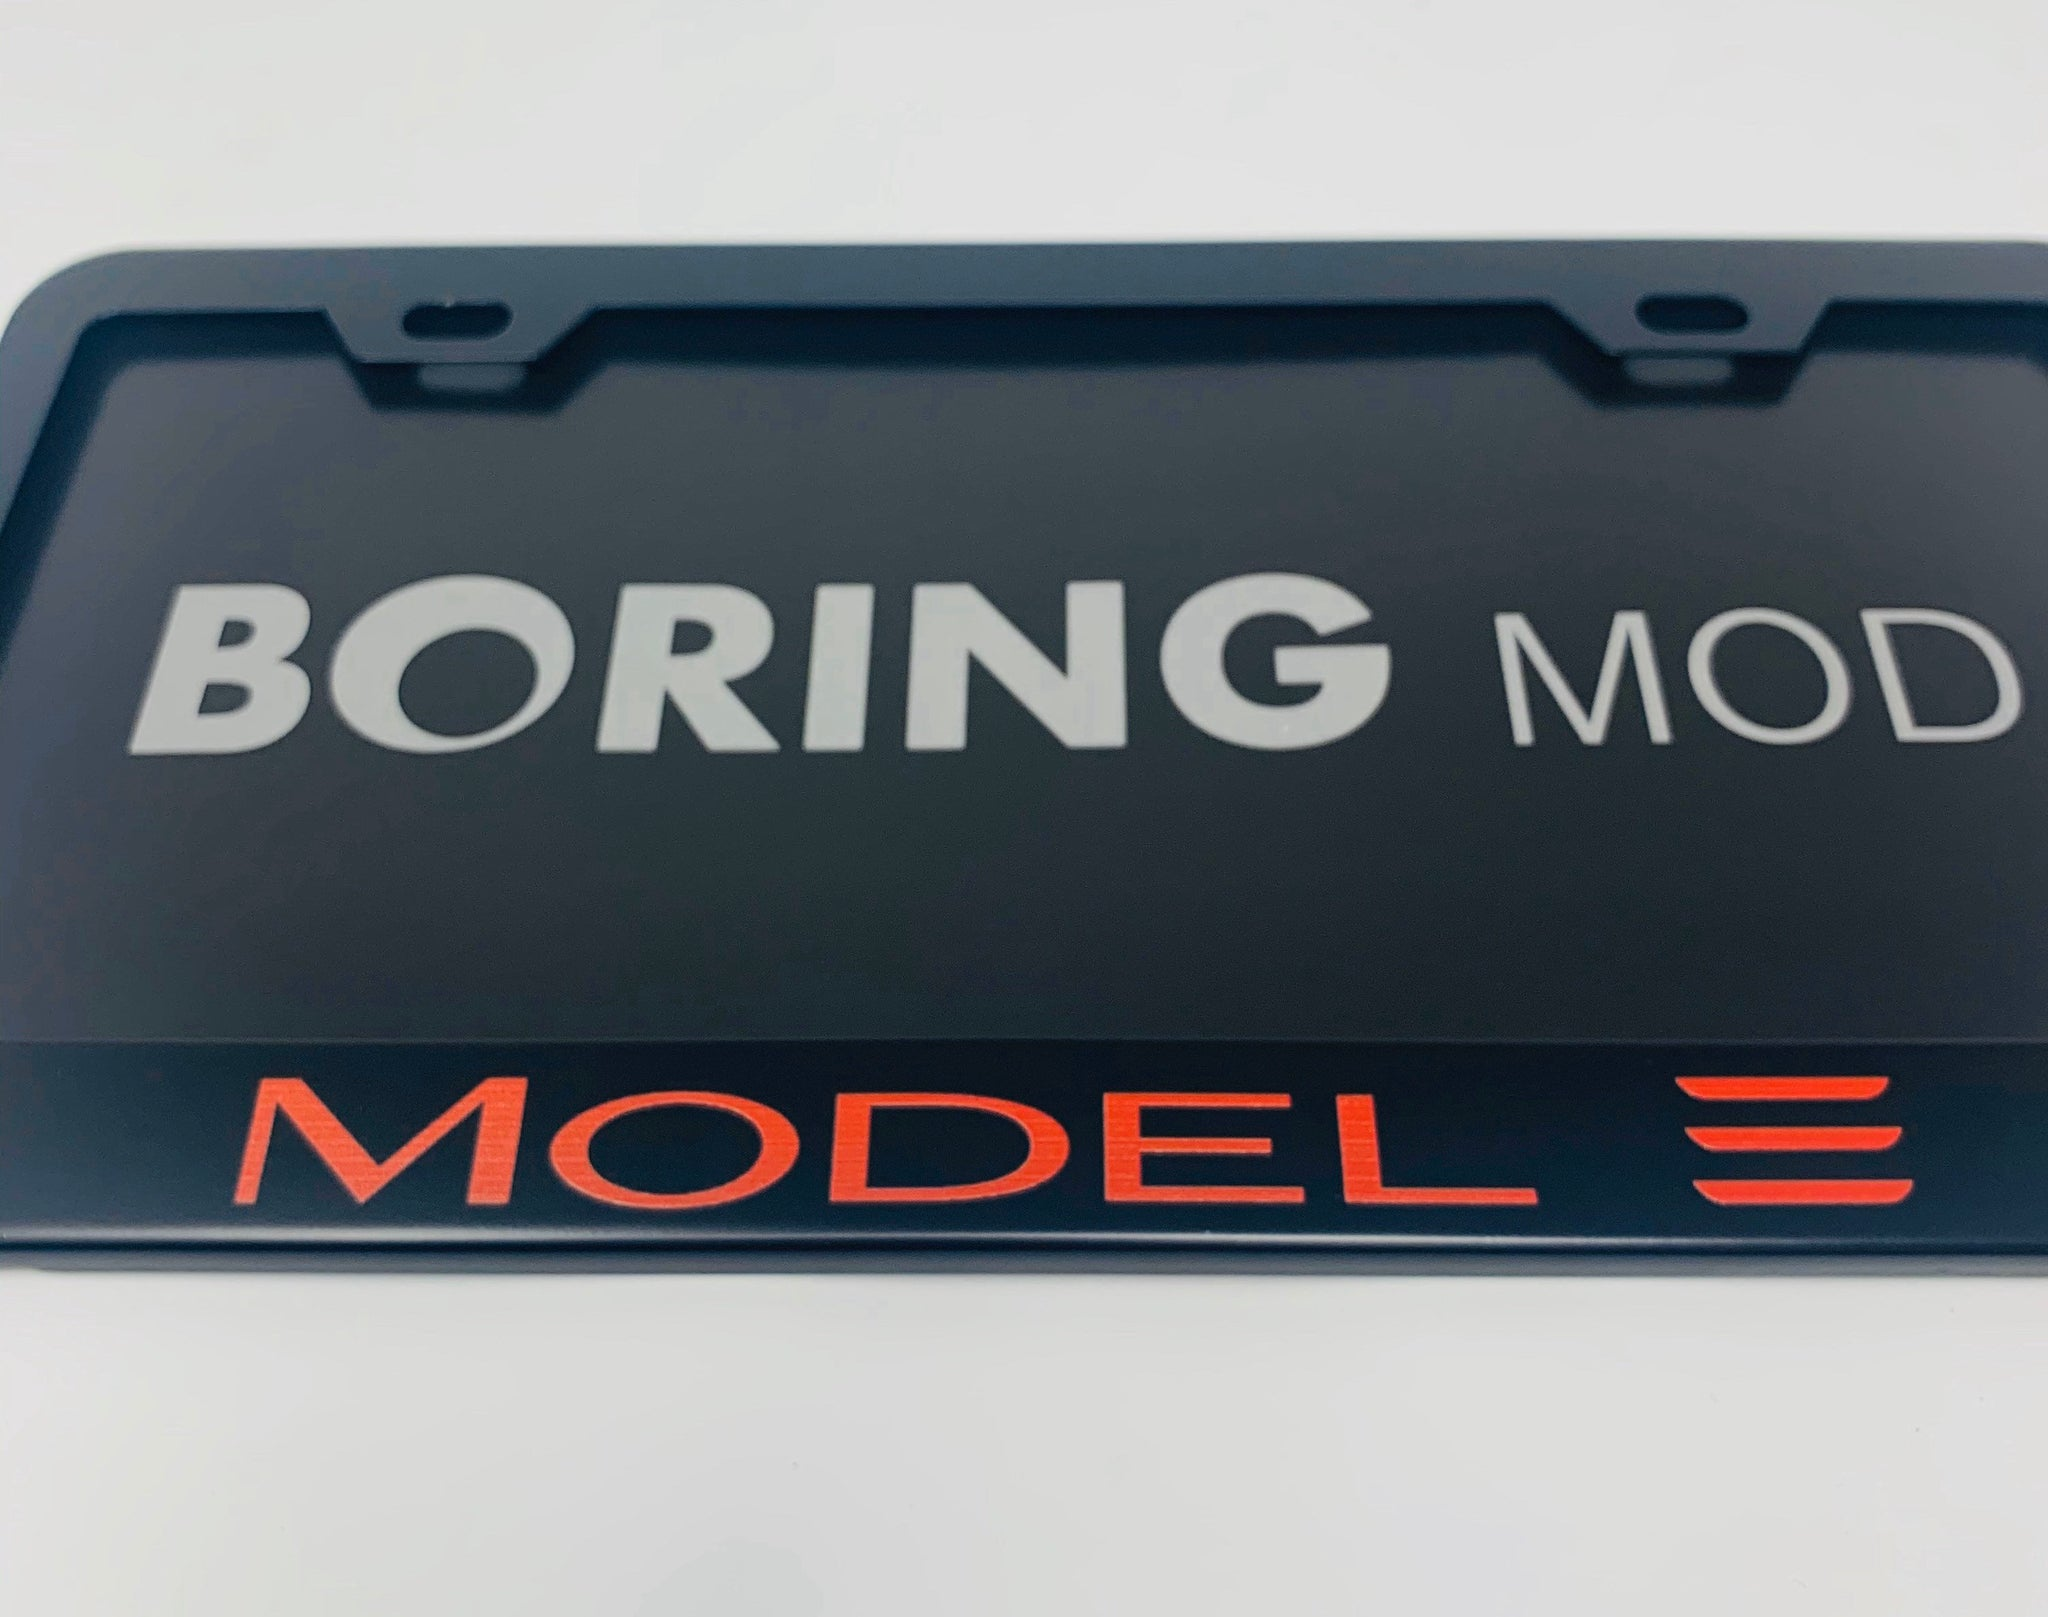 Tesla REDMODEL 3 /// Black License Plate Frame, Printed, Metal, No Stickers, BORINGmod, Best Gift, Free Returns